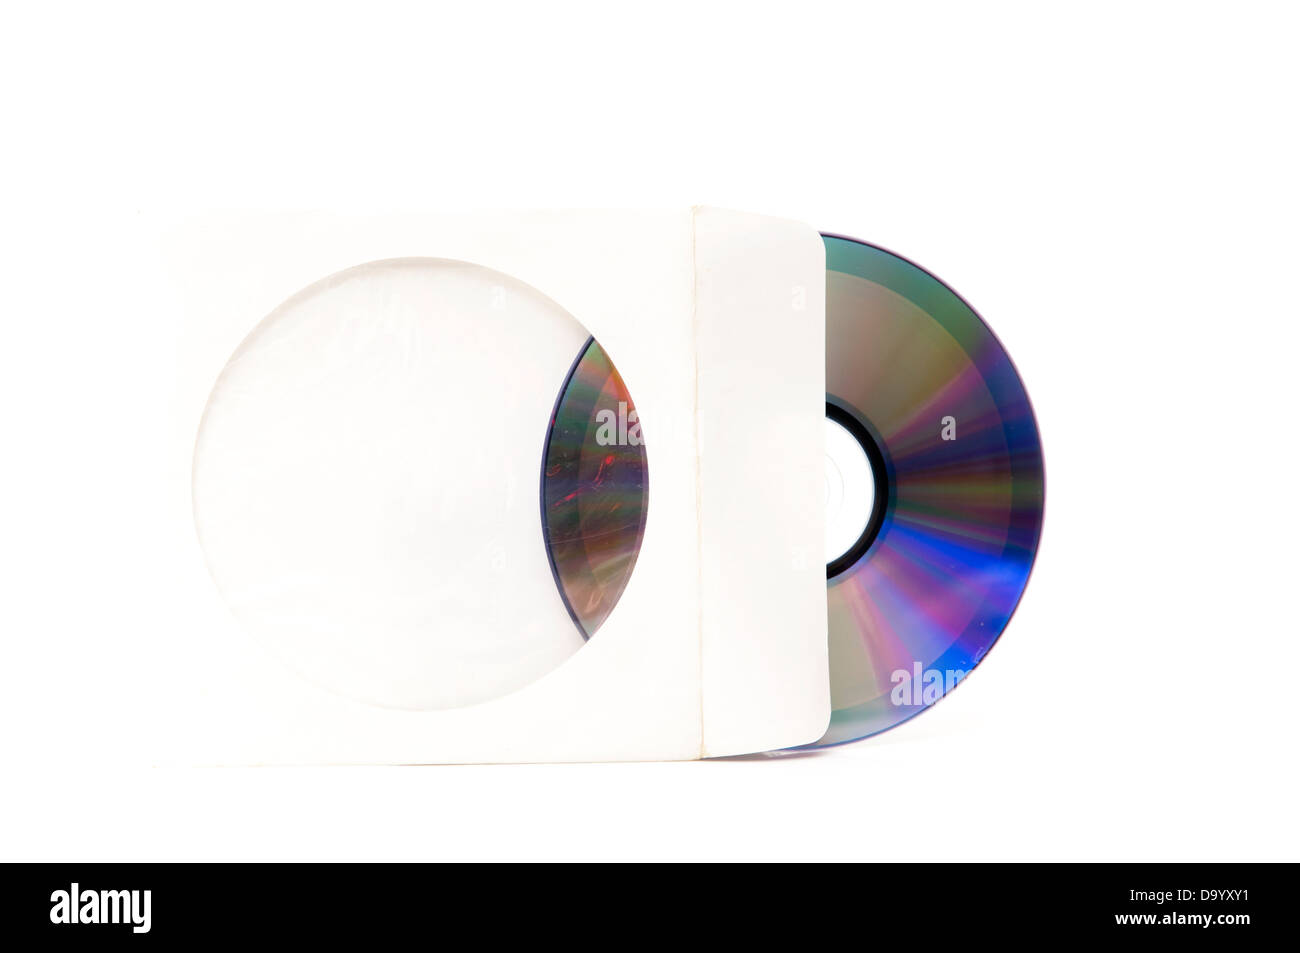 music cd packaging on a white background - Stock Image